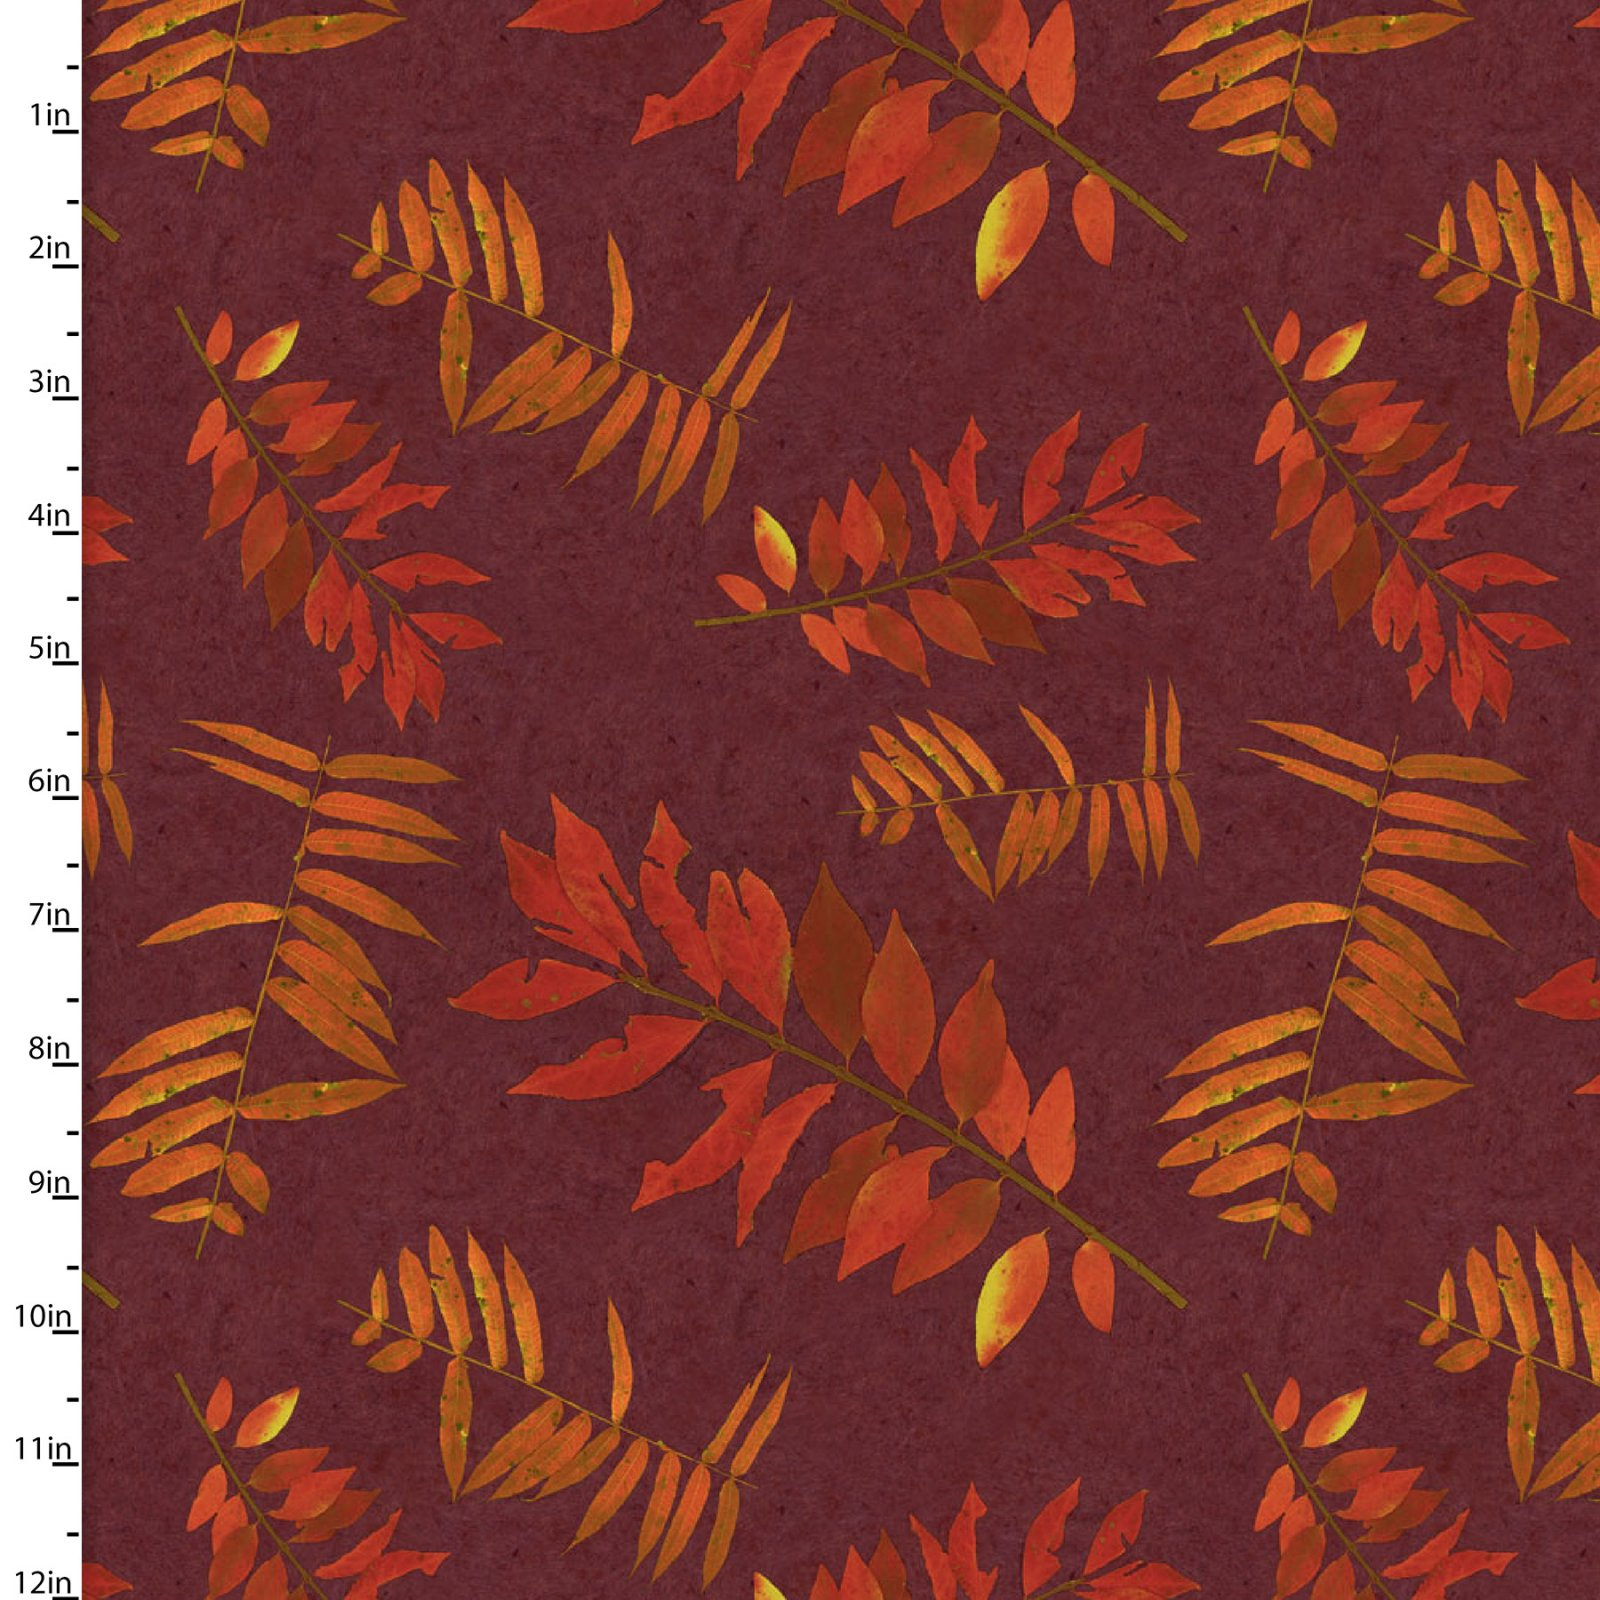 3 Wishes Rustic Roosters Digital 13851-Burgundy leaf fronds